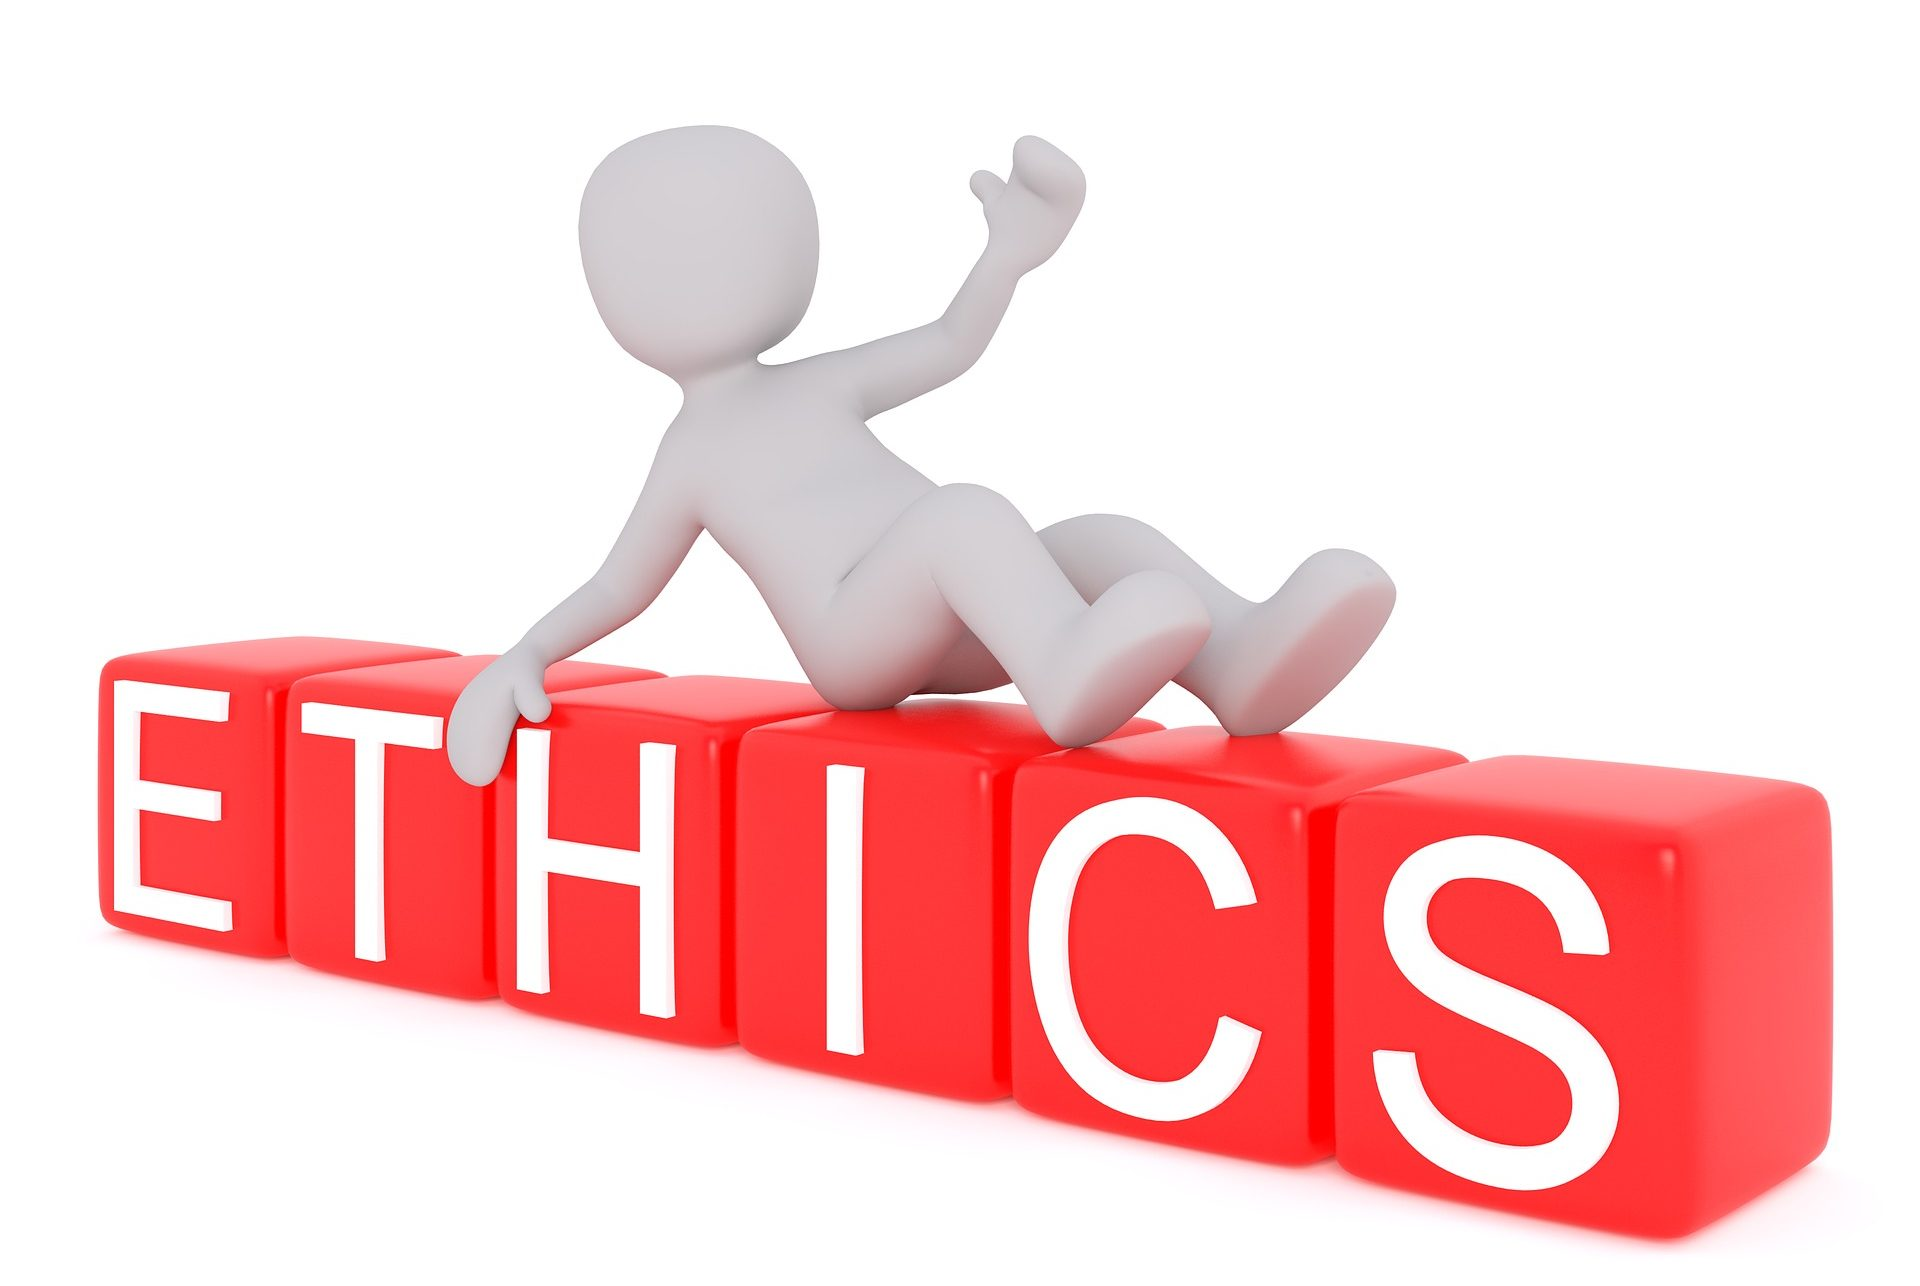 Icon of a person sitting on top of the word ethics. They are giving a thumbs up approvingly.